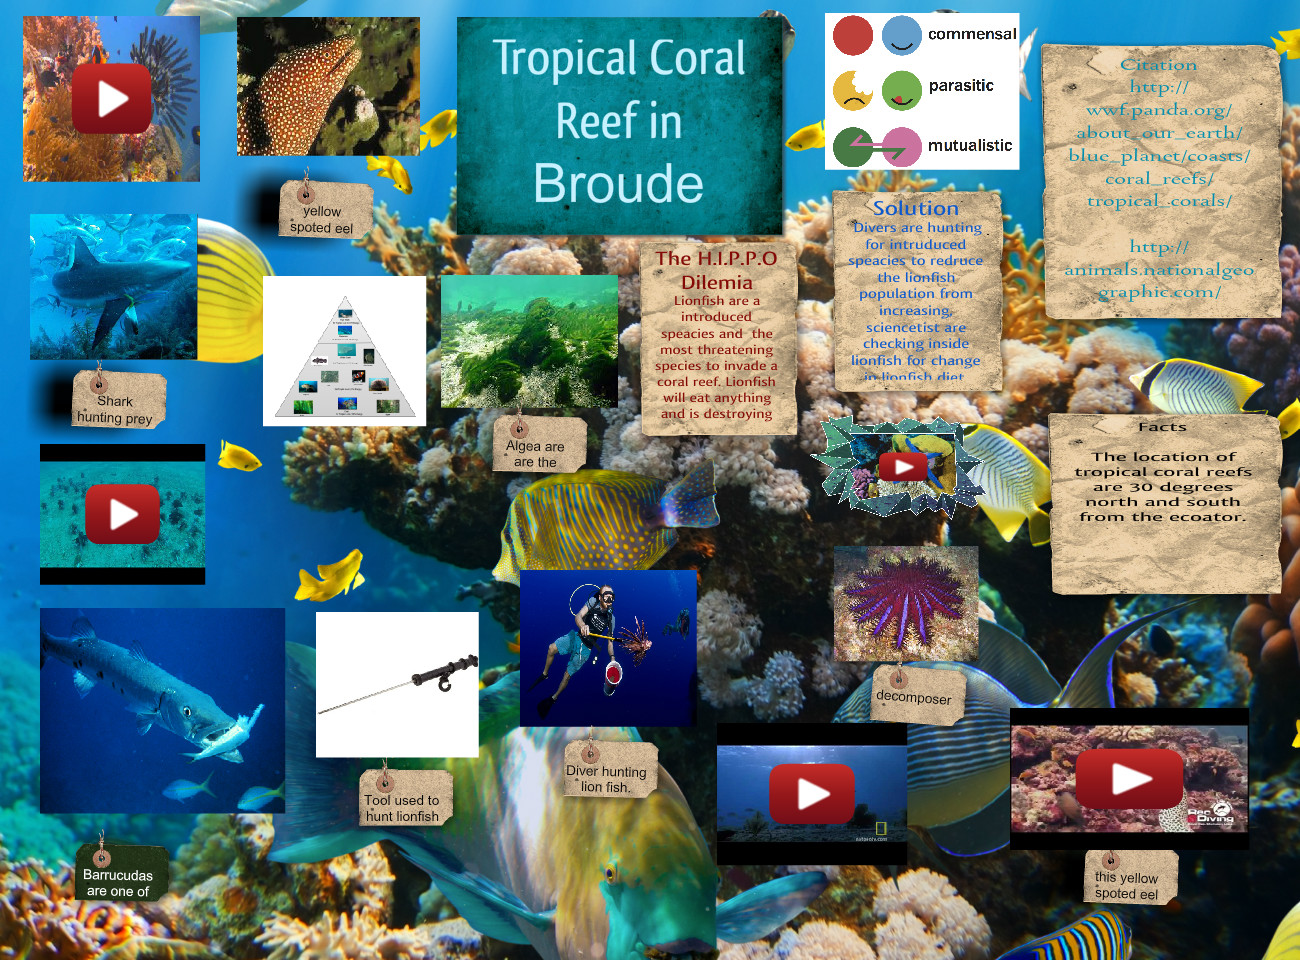 Tropical Coral Reef in Broude